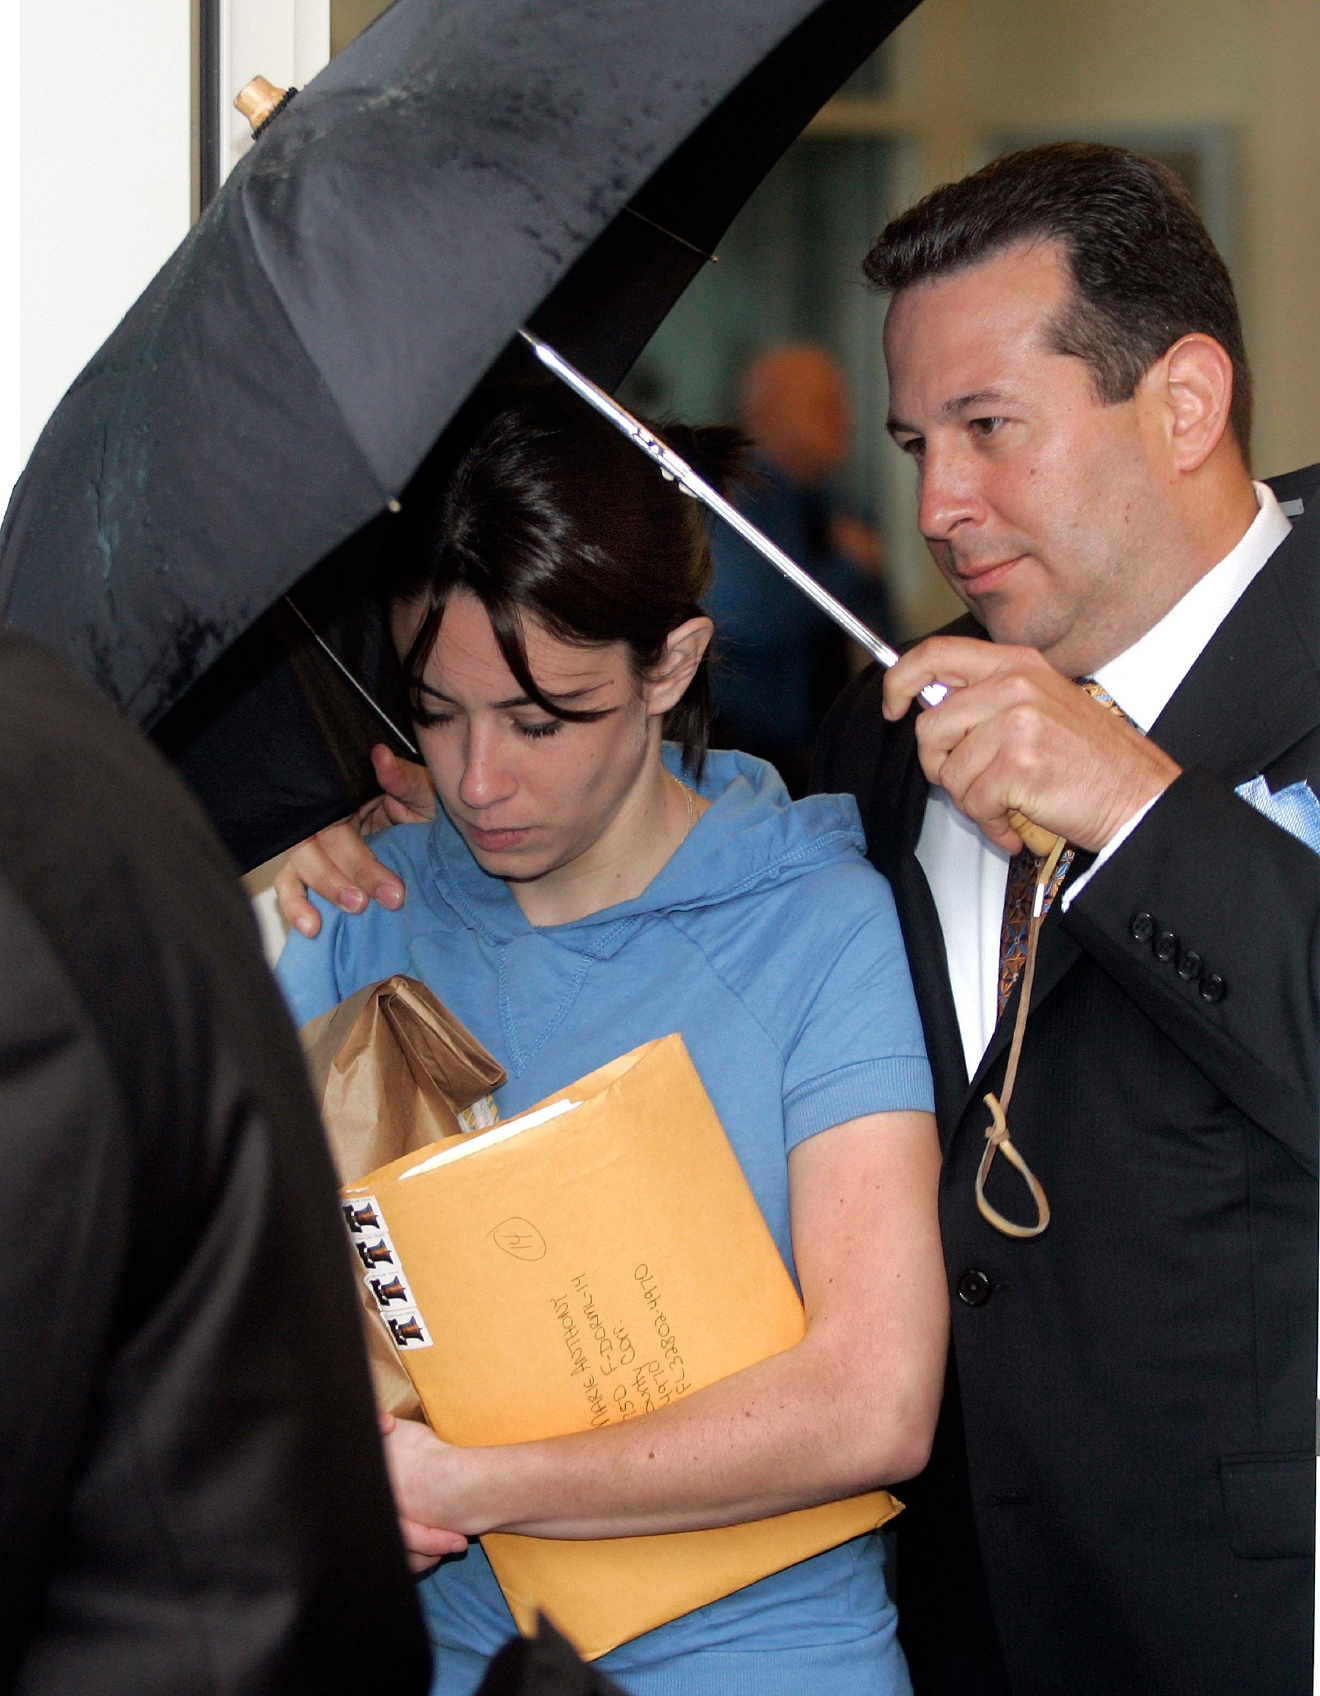 FILE- In this Aug. 21, 2008, file photo, Casey Anthony, mother of missing toddler Caylee, is escorted from the Orange County Florida jail by her attorney Jose Baez. (AP Photo/Reinhold Matay, File)